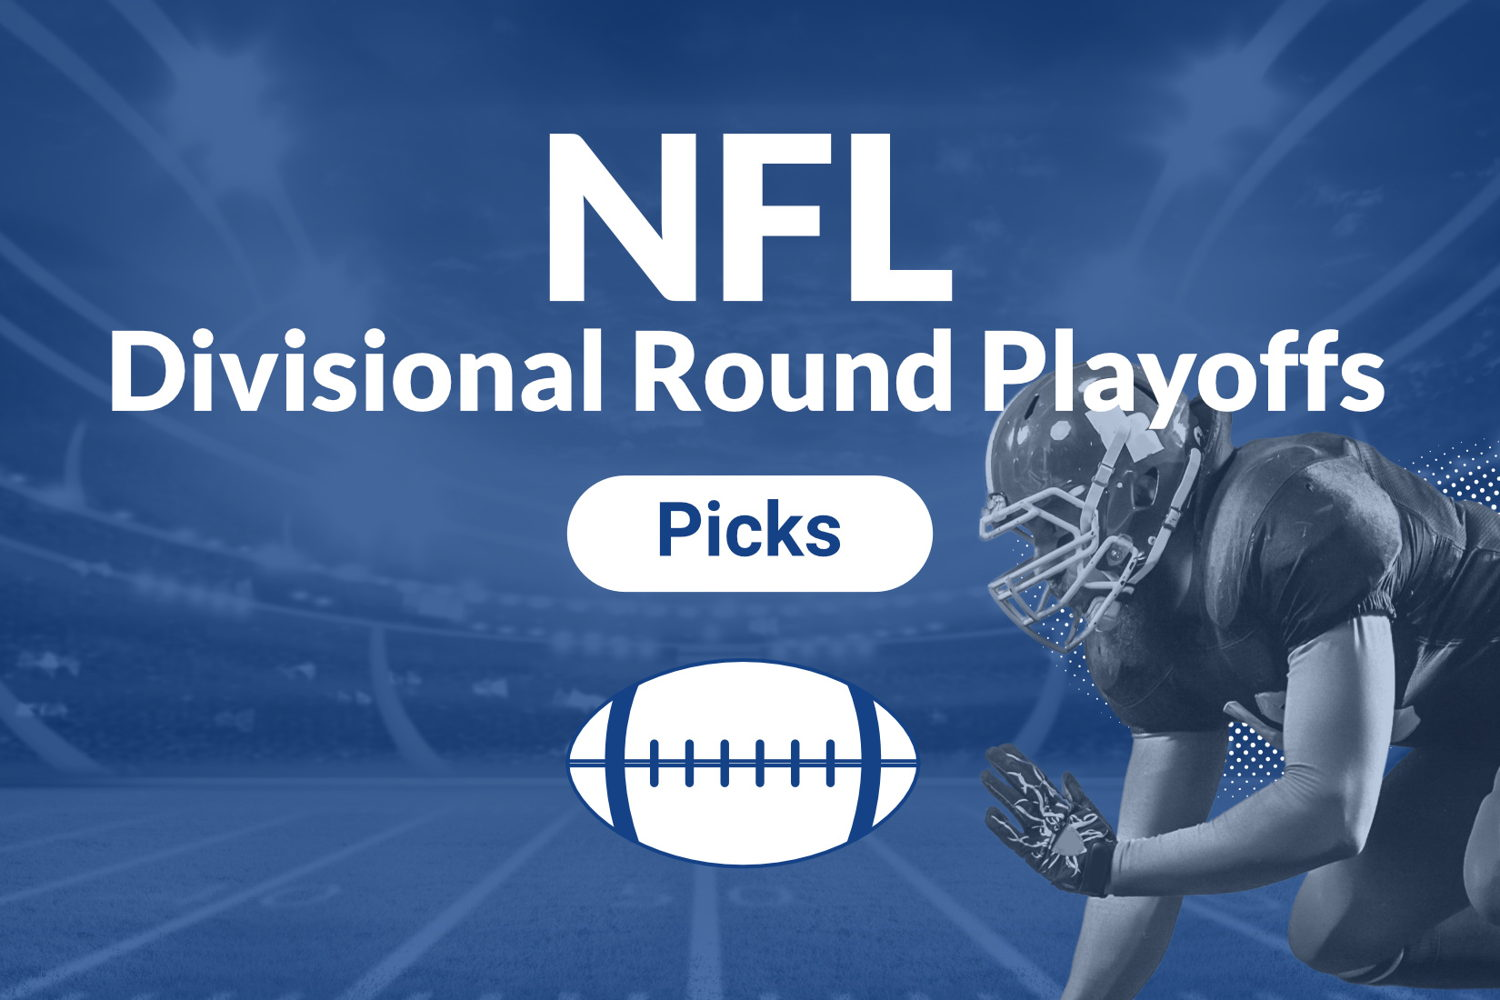 NFL Divisional Round Playoffs: Packers, Chiefs Heavily Favored